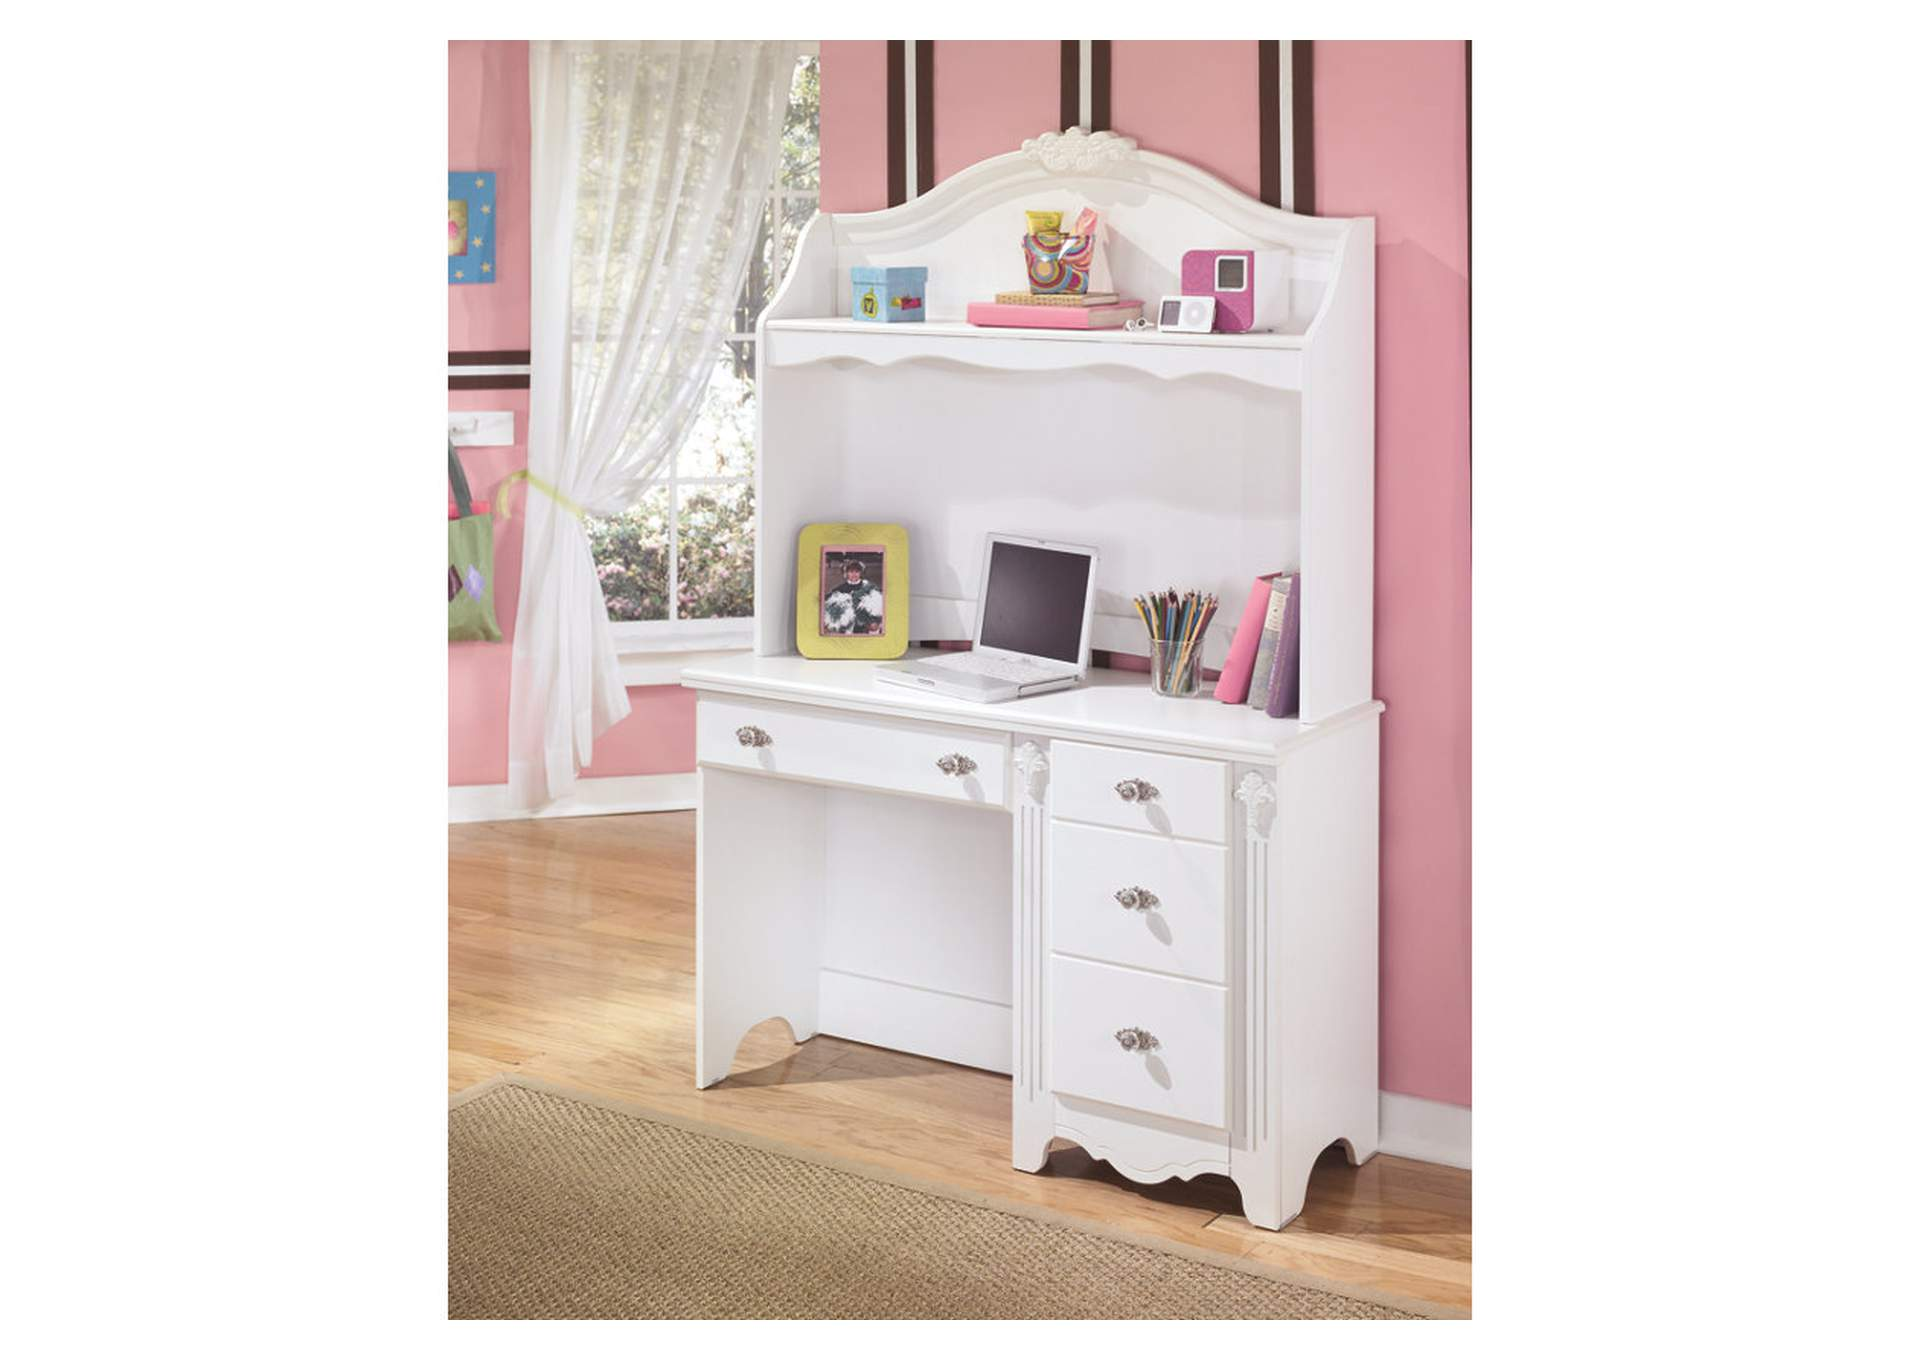 Exquisite Bedroom Desk & Hutch,ABF Signature Design by Ashley